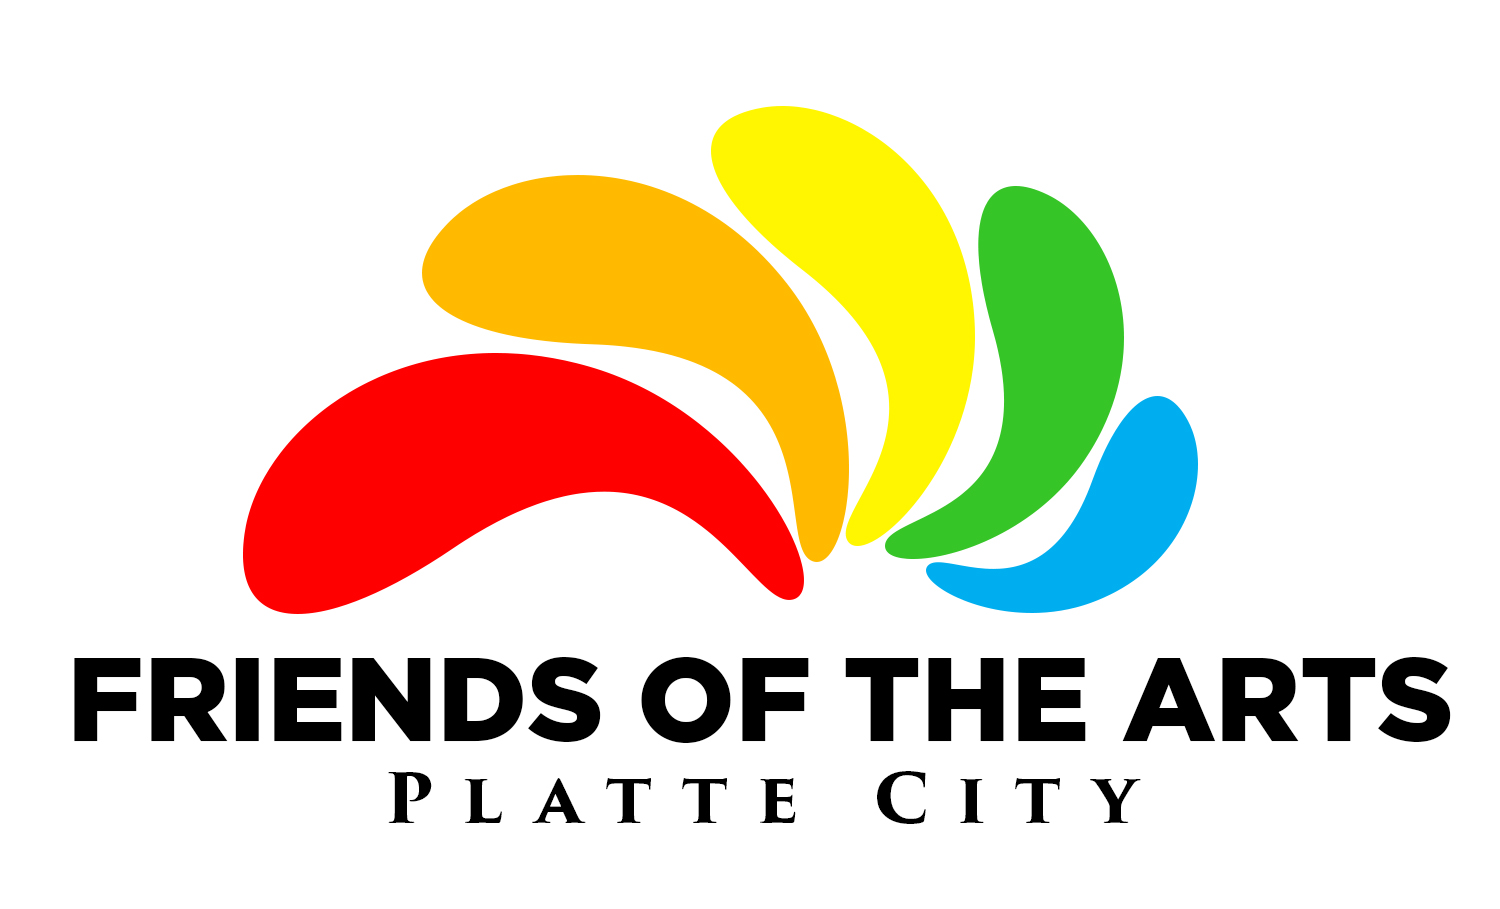 Platte City Friends of the Arts